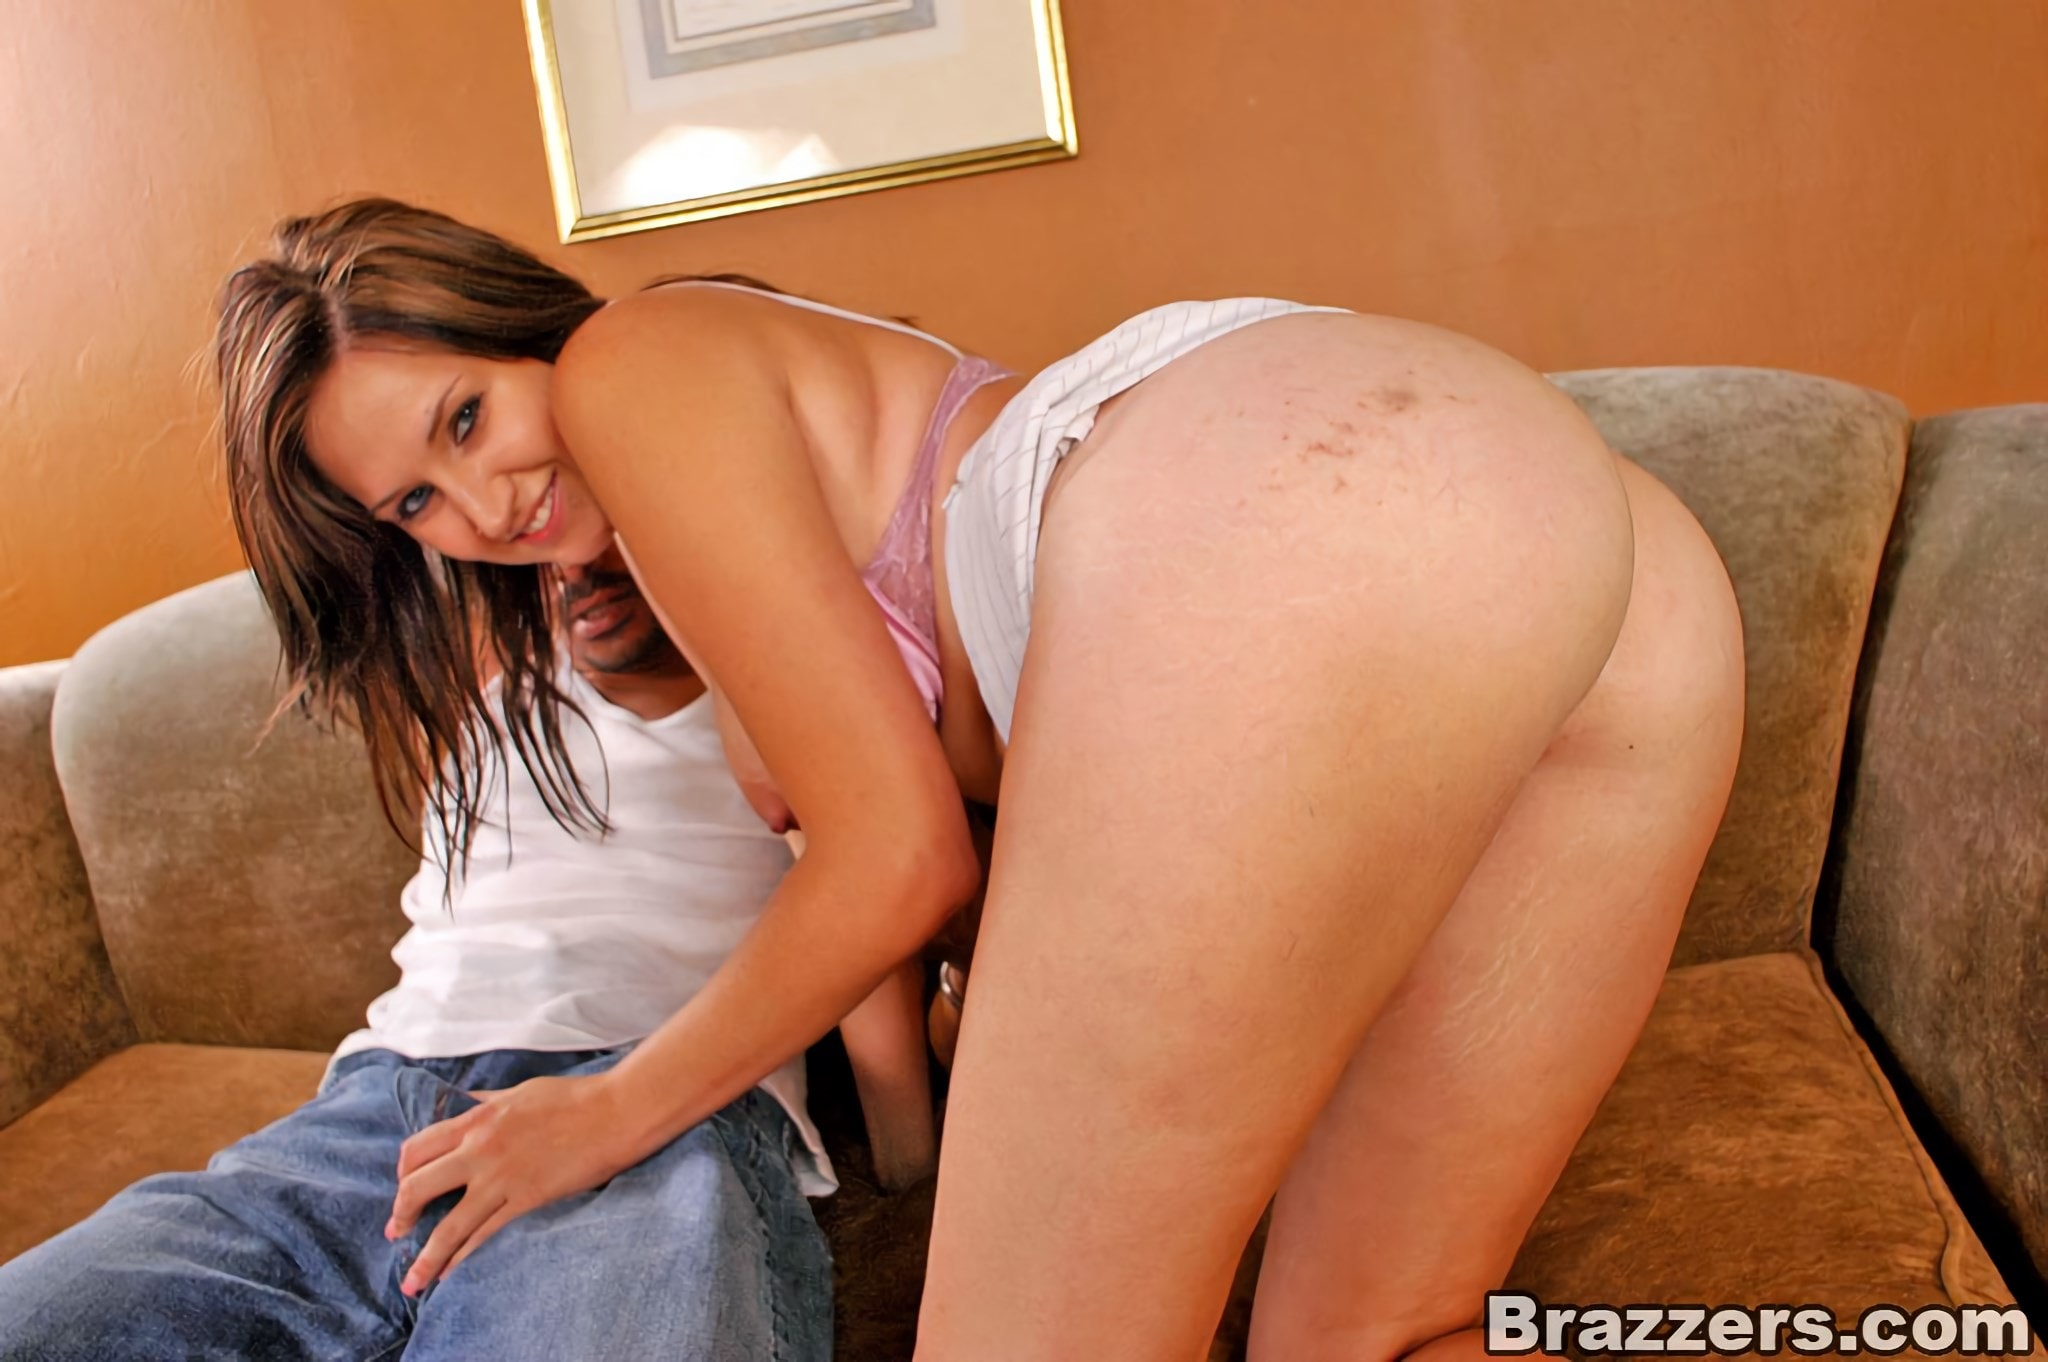 Brazzers 'Teenie With A Booty' starring Isis (Photo 8)